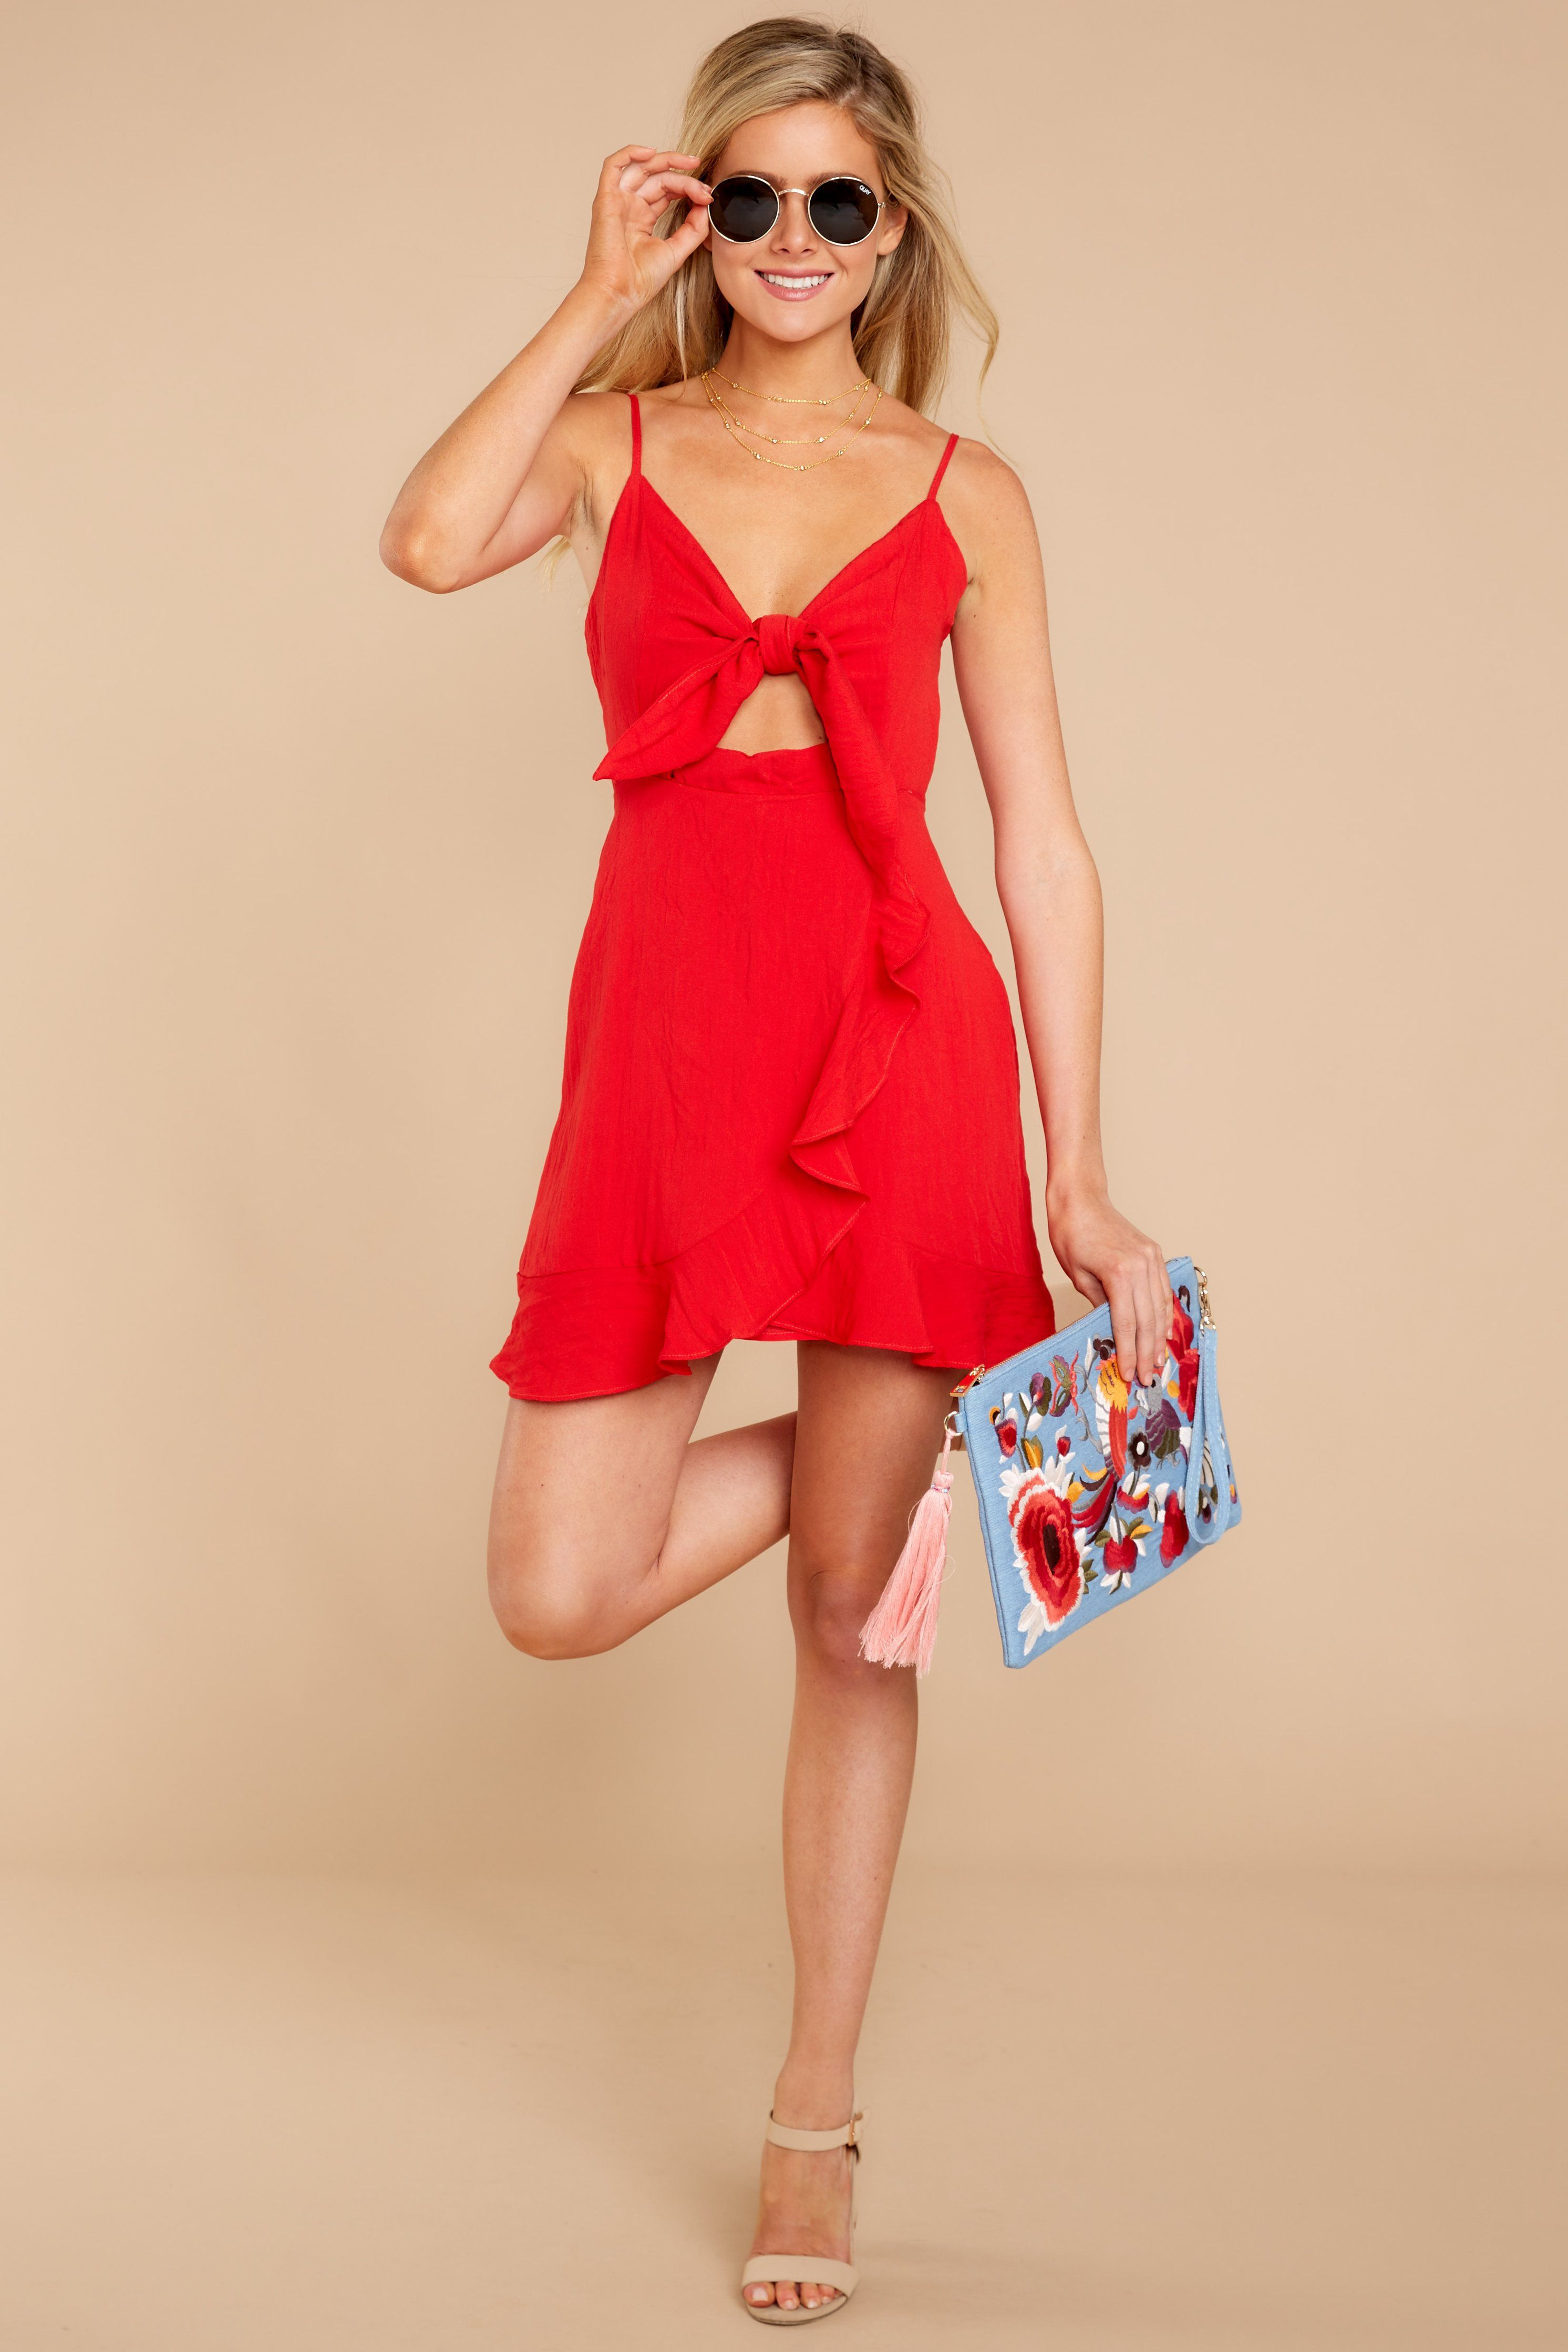 e01fb641beb Trendy Red Dress - Cute Red Dress - Dress -  42.00 – Red Dress Boutique